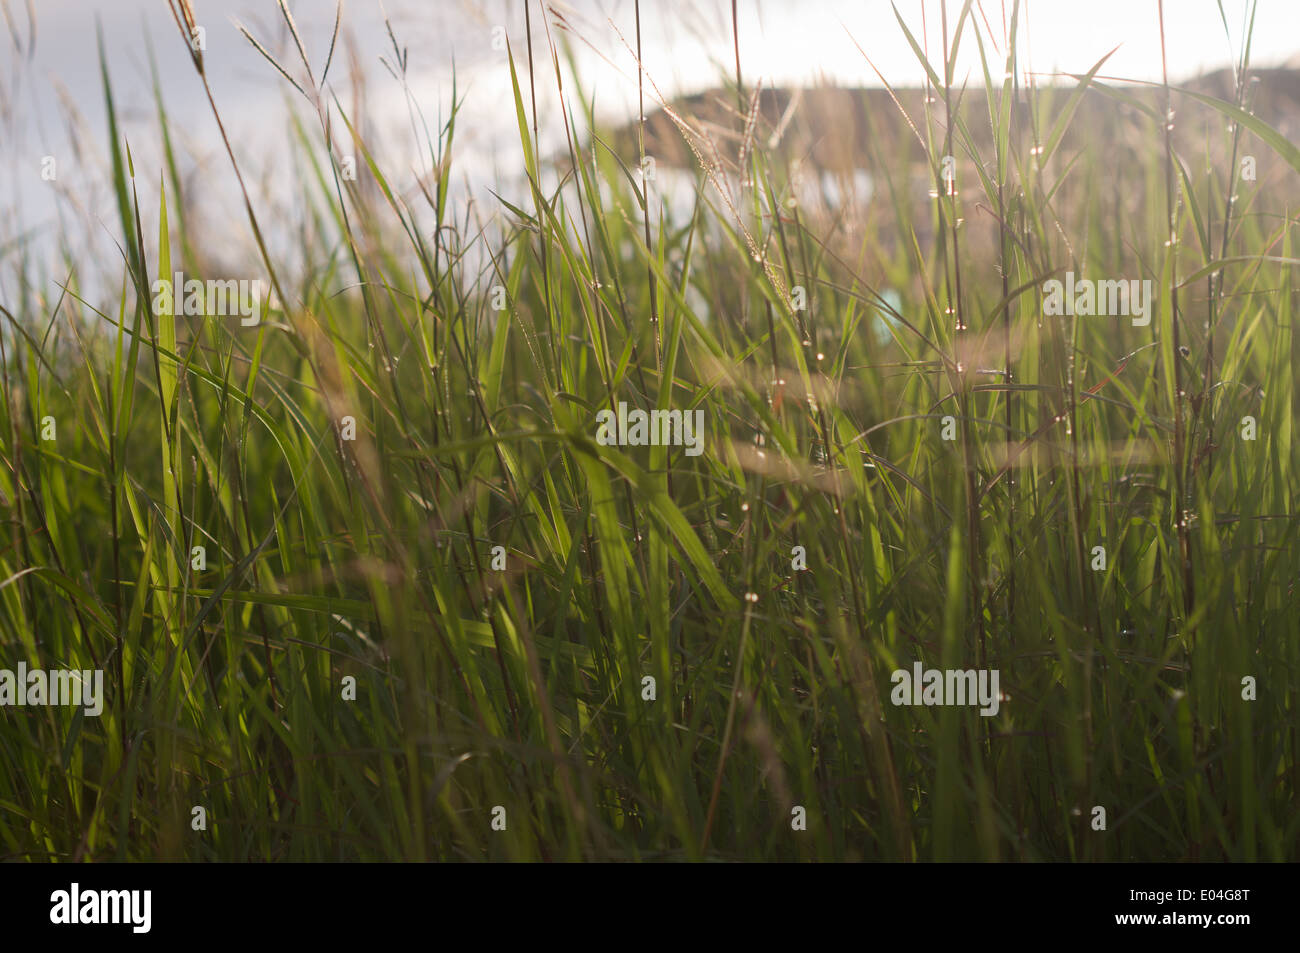 tall blady grass - Stock Image